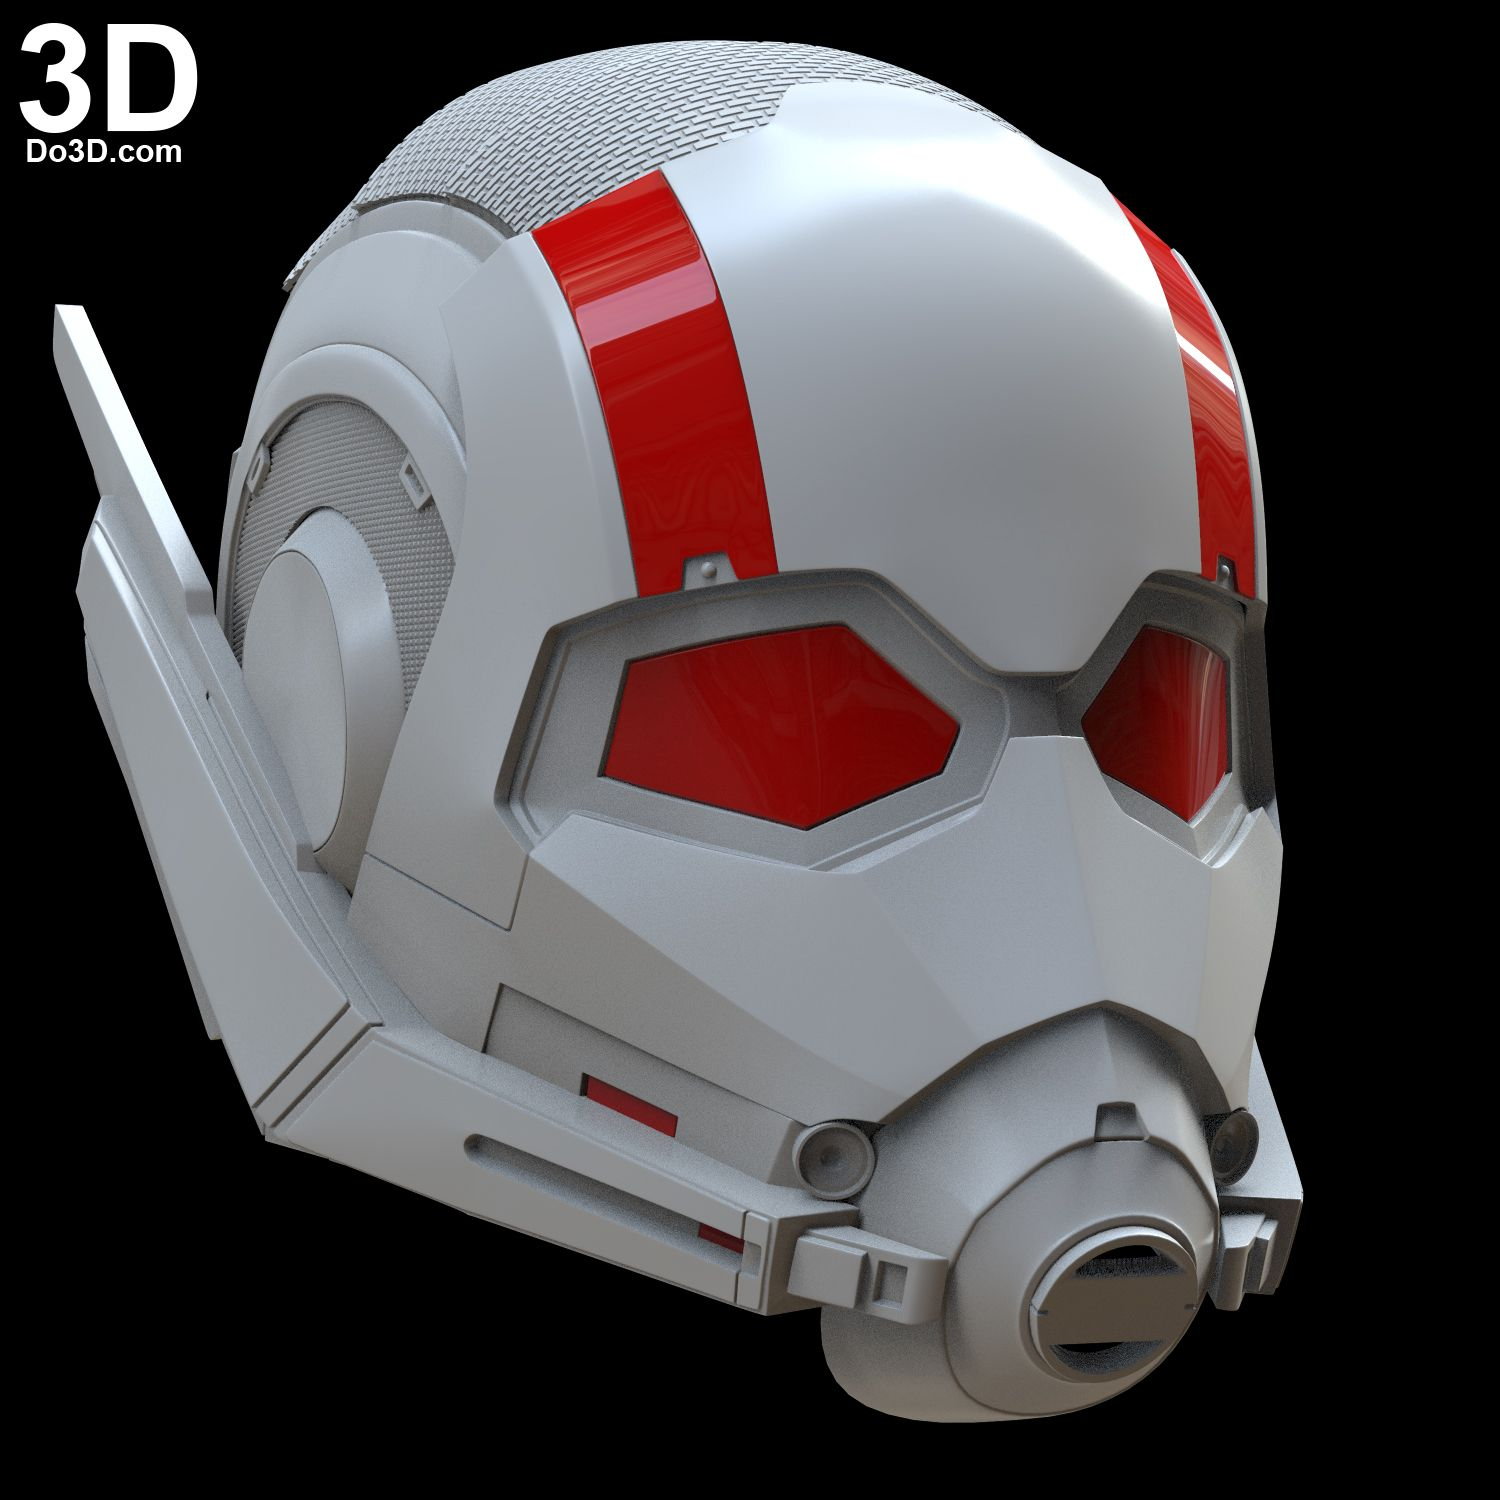 Ant Man And The Wasp Male Girl Woman Helmet 3d Printable Model Print File Stl Do3d 01 Ant Man 3d Printable Models Man